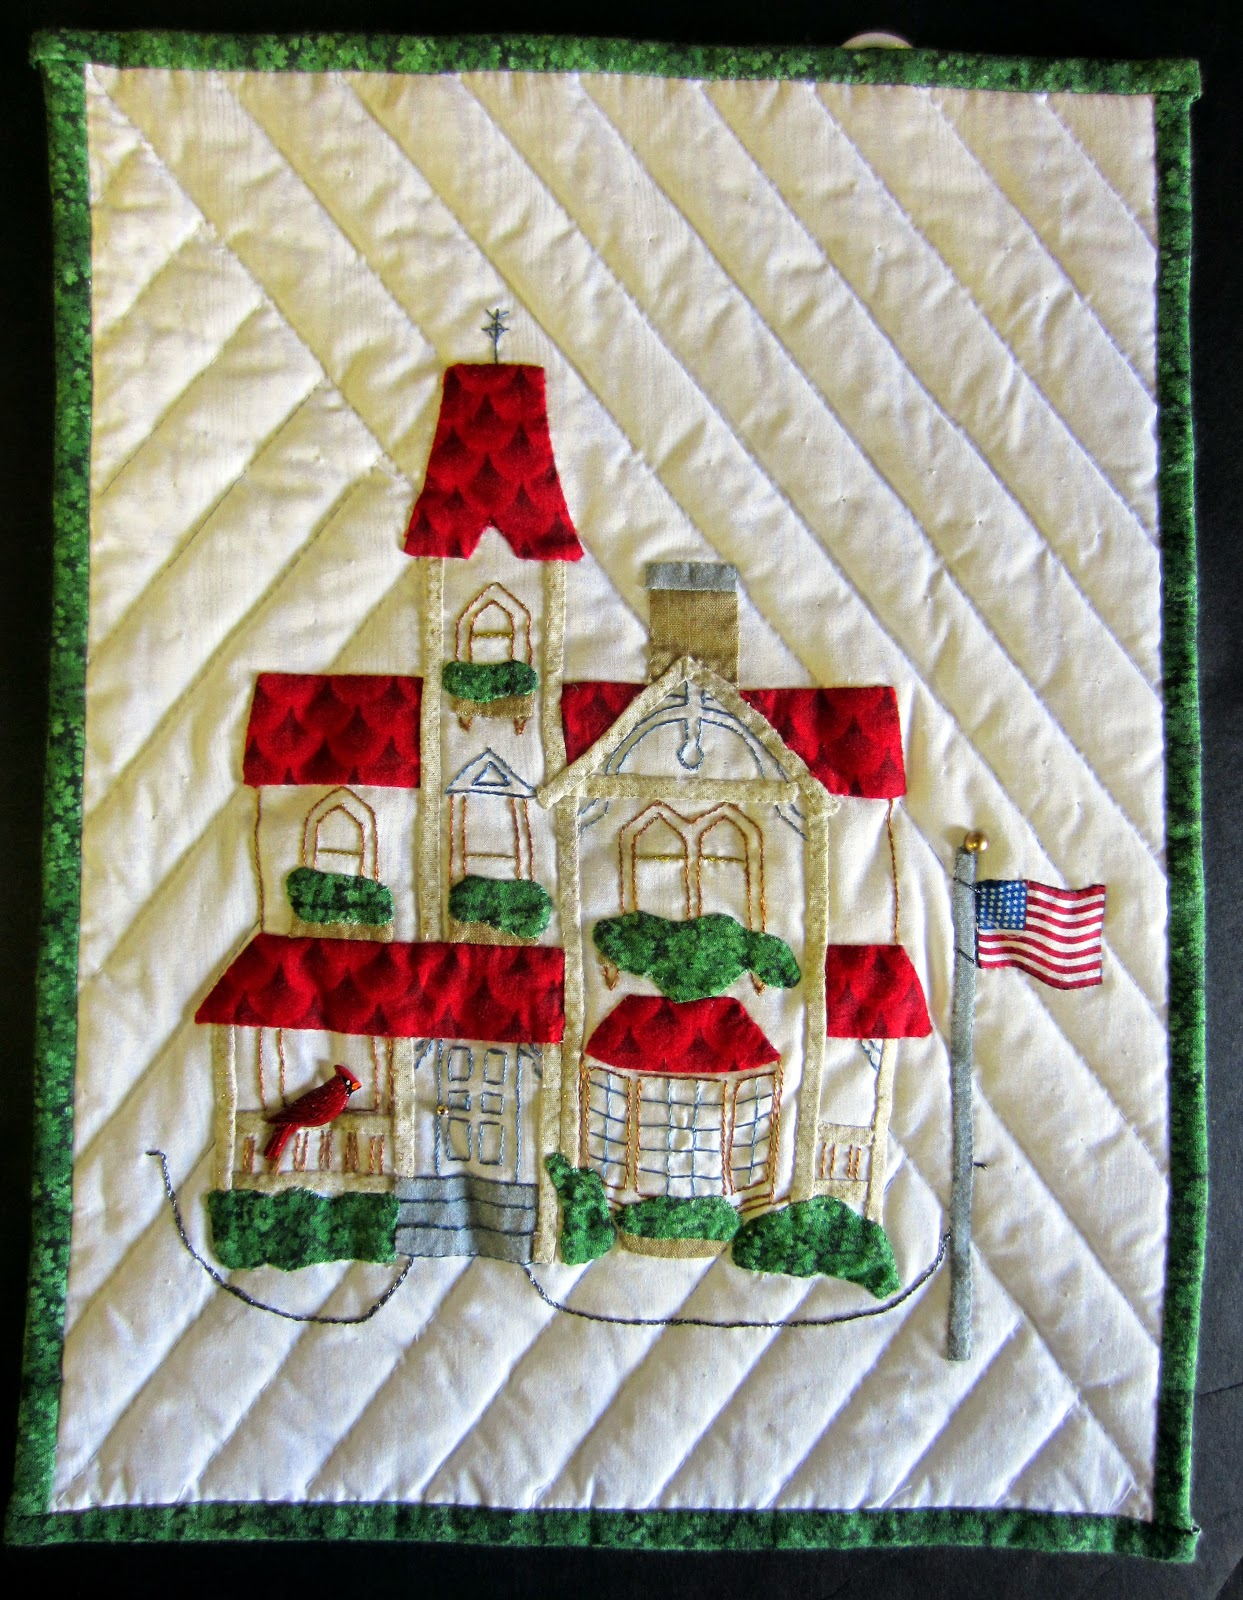 The House Quilt Project: Home Sweet Home Houses by the Calico ... : quilts n calicoes - Adamdwight.com